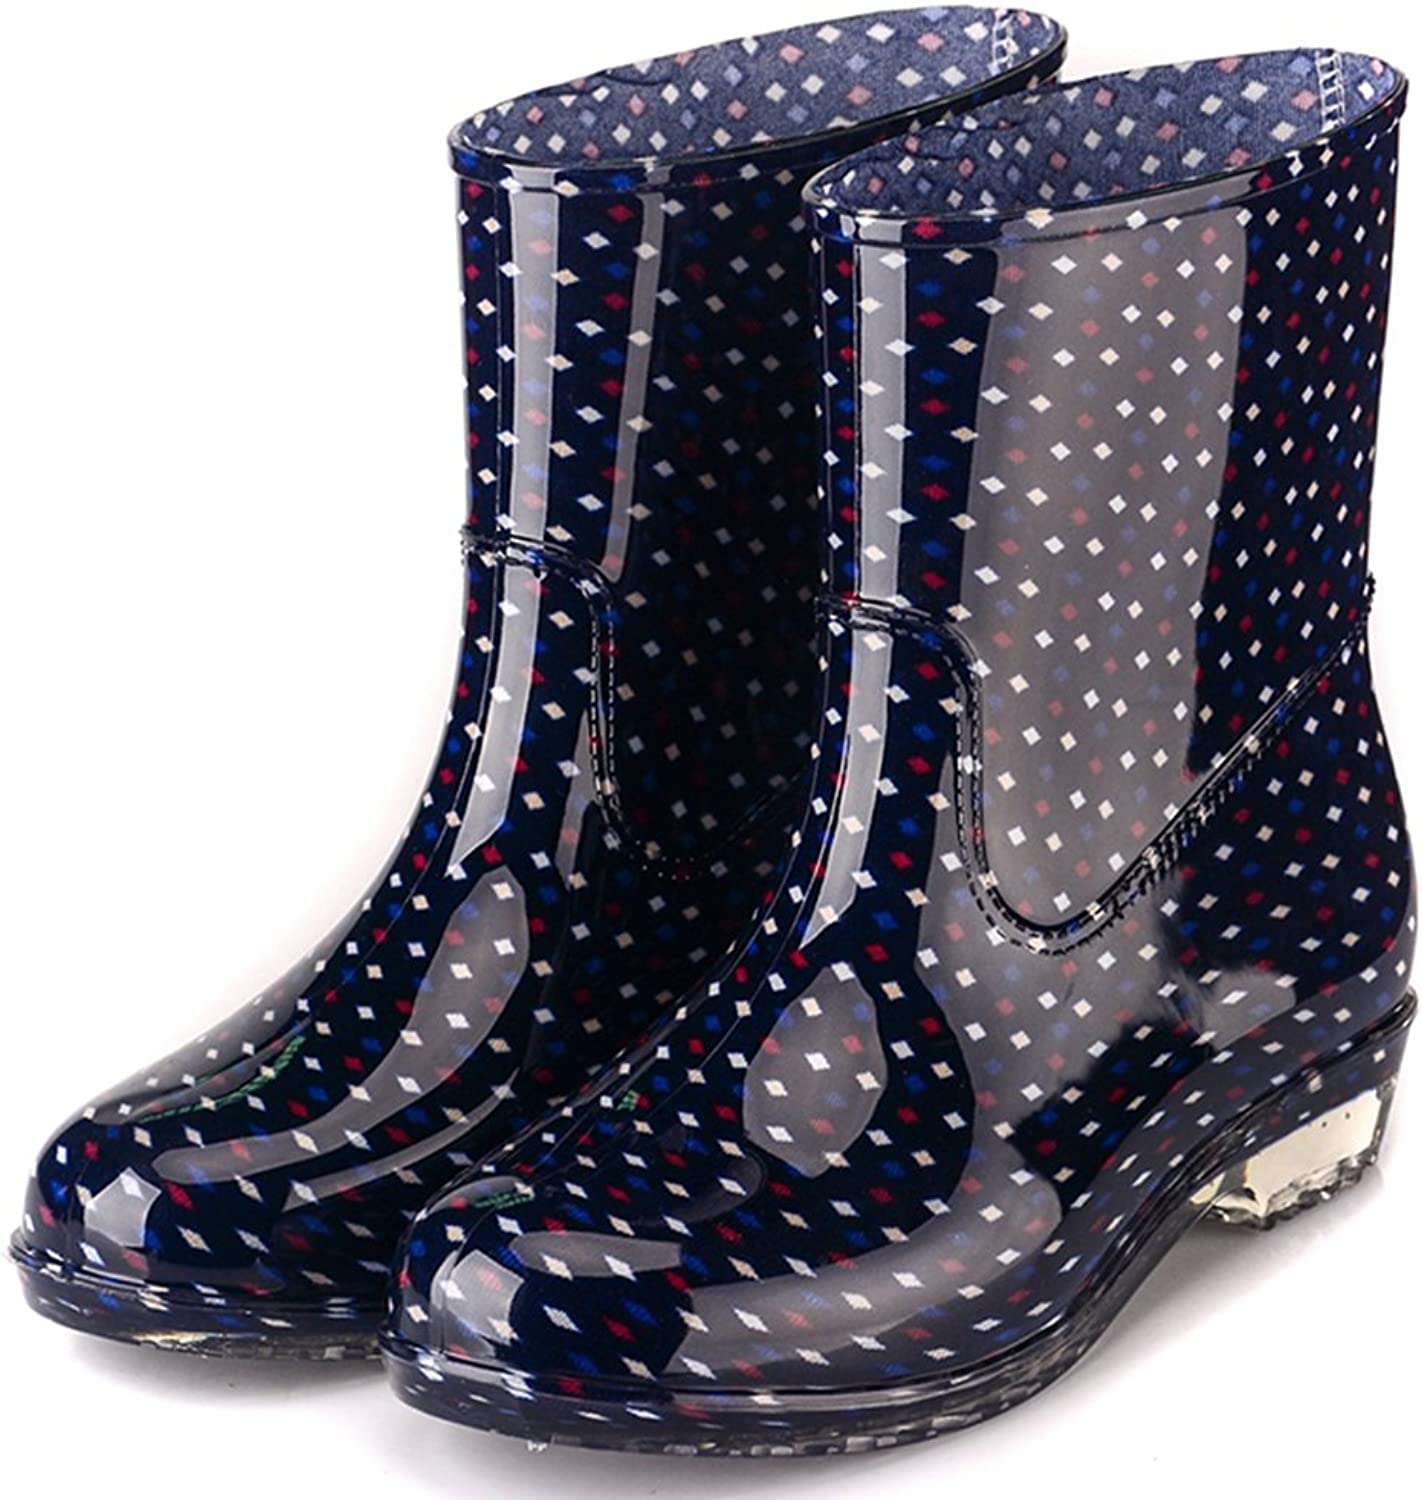 Womens Waterproof Rain Boots Rubber Festival Rain Mud Snow Ladies Fashion Wellington Wellies NonSlip Tall shoes Sizes